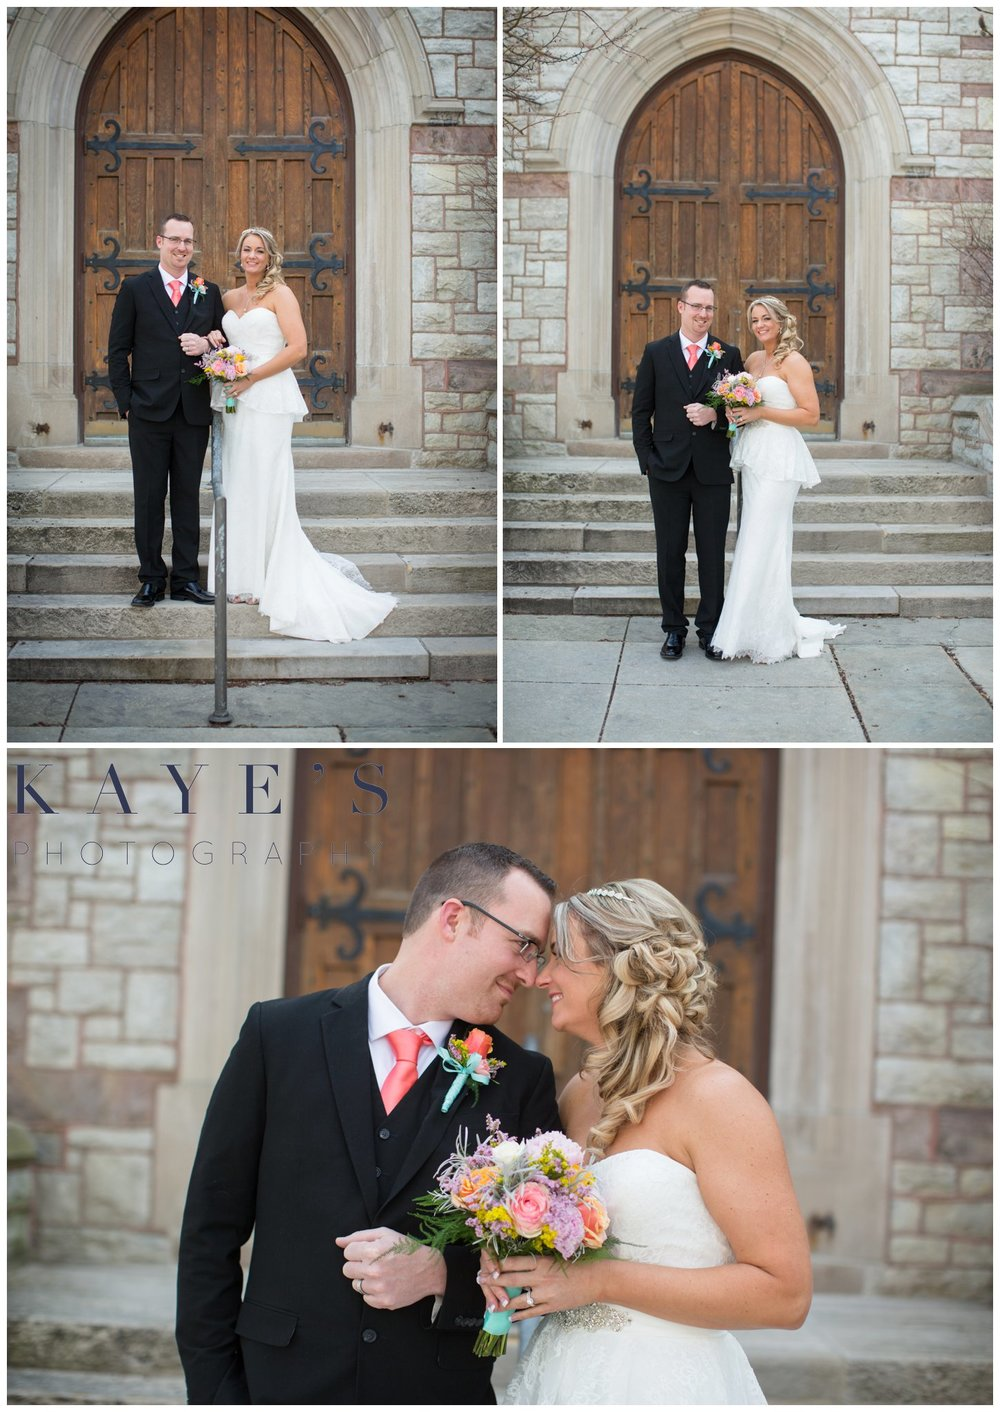 Grand Blanc wedding photographer, grand blanc wedding photography, bride and groom outside of church, bride and groom, church wedding, wedding photography ideas, bridal photography